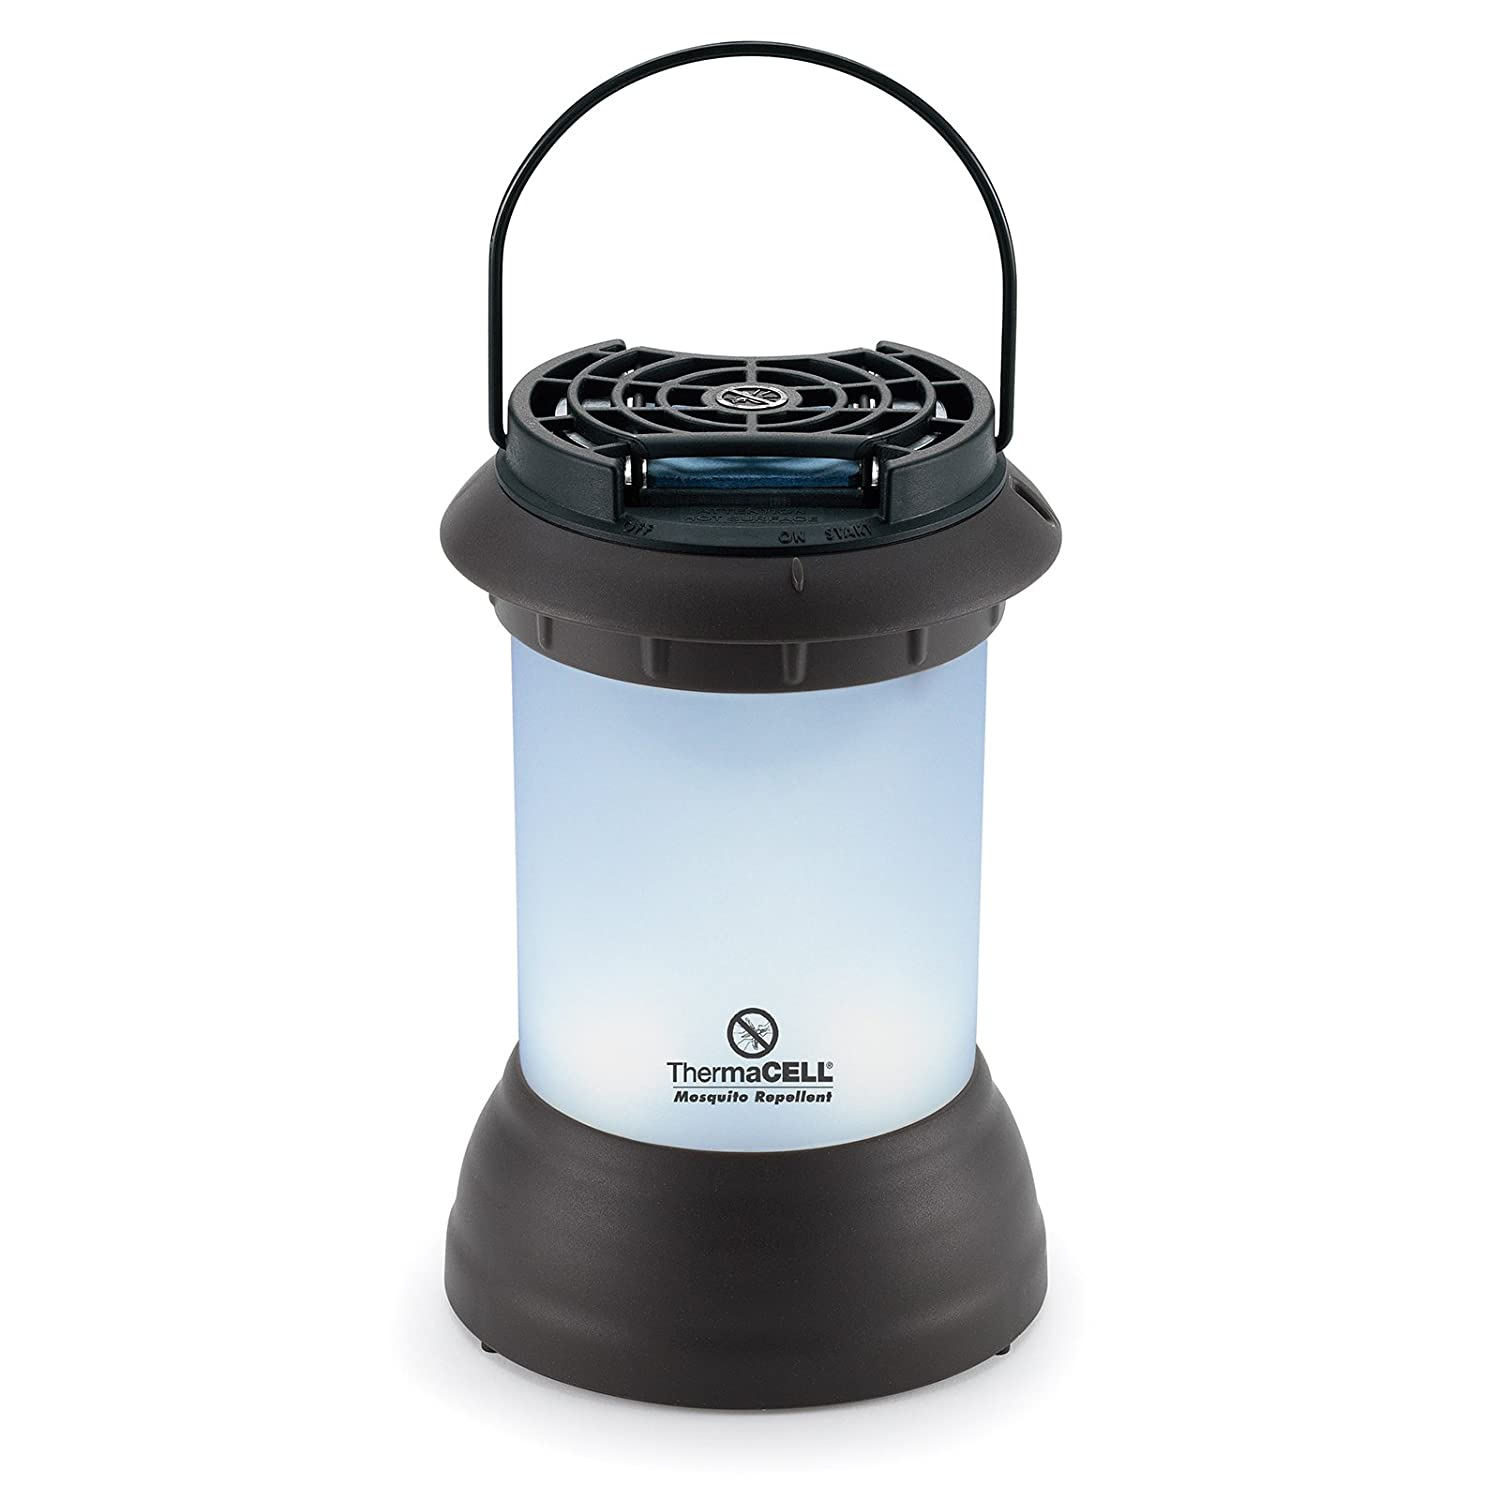 Amazon.com: Thermacell MR 9SB Mosquito Repellent Pest Control Outdoor And  Camping Cordless Lantern, Dark Bronze: Sports U0026 Outdoors